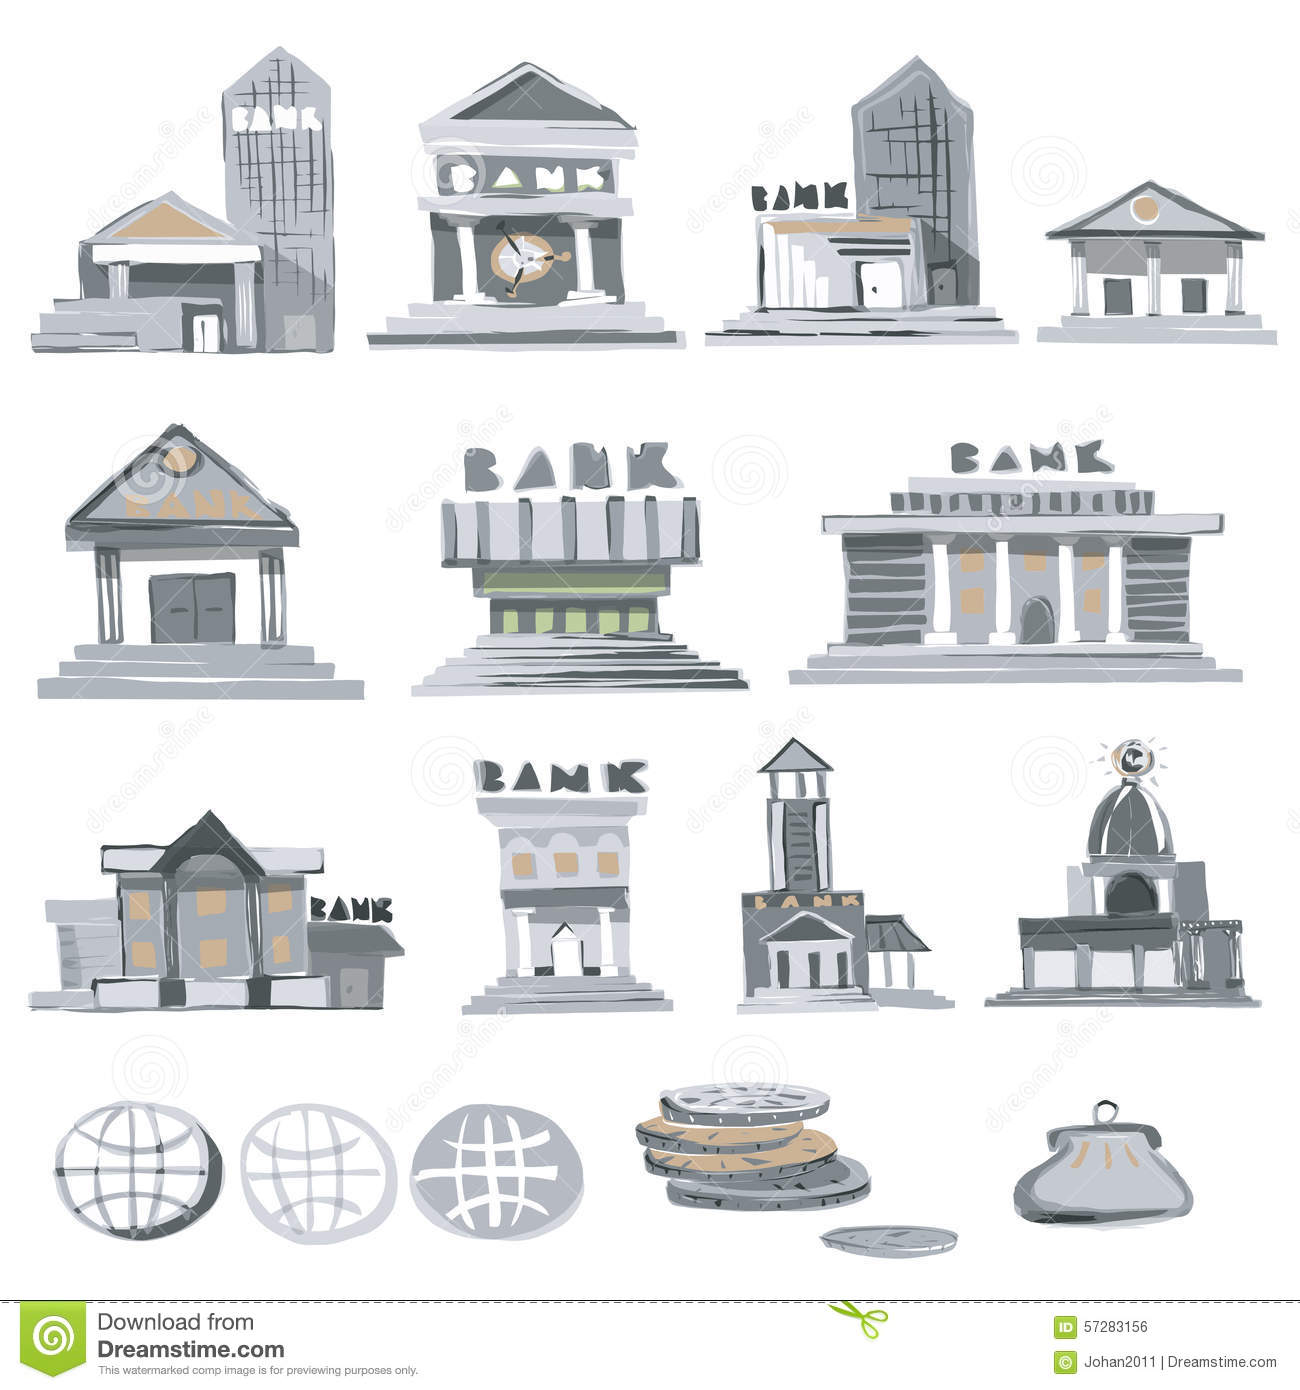 Bank Buildings Stock Vector